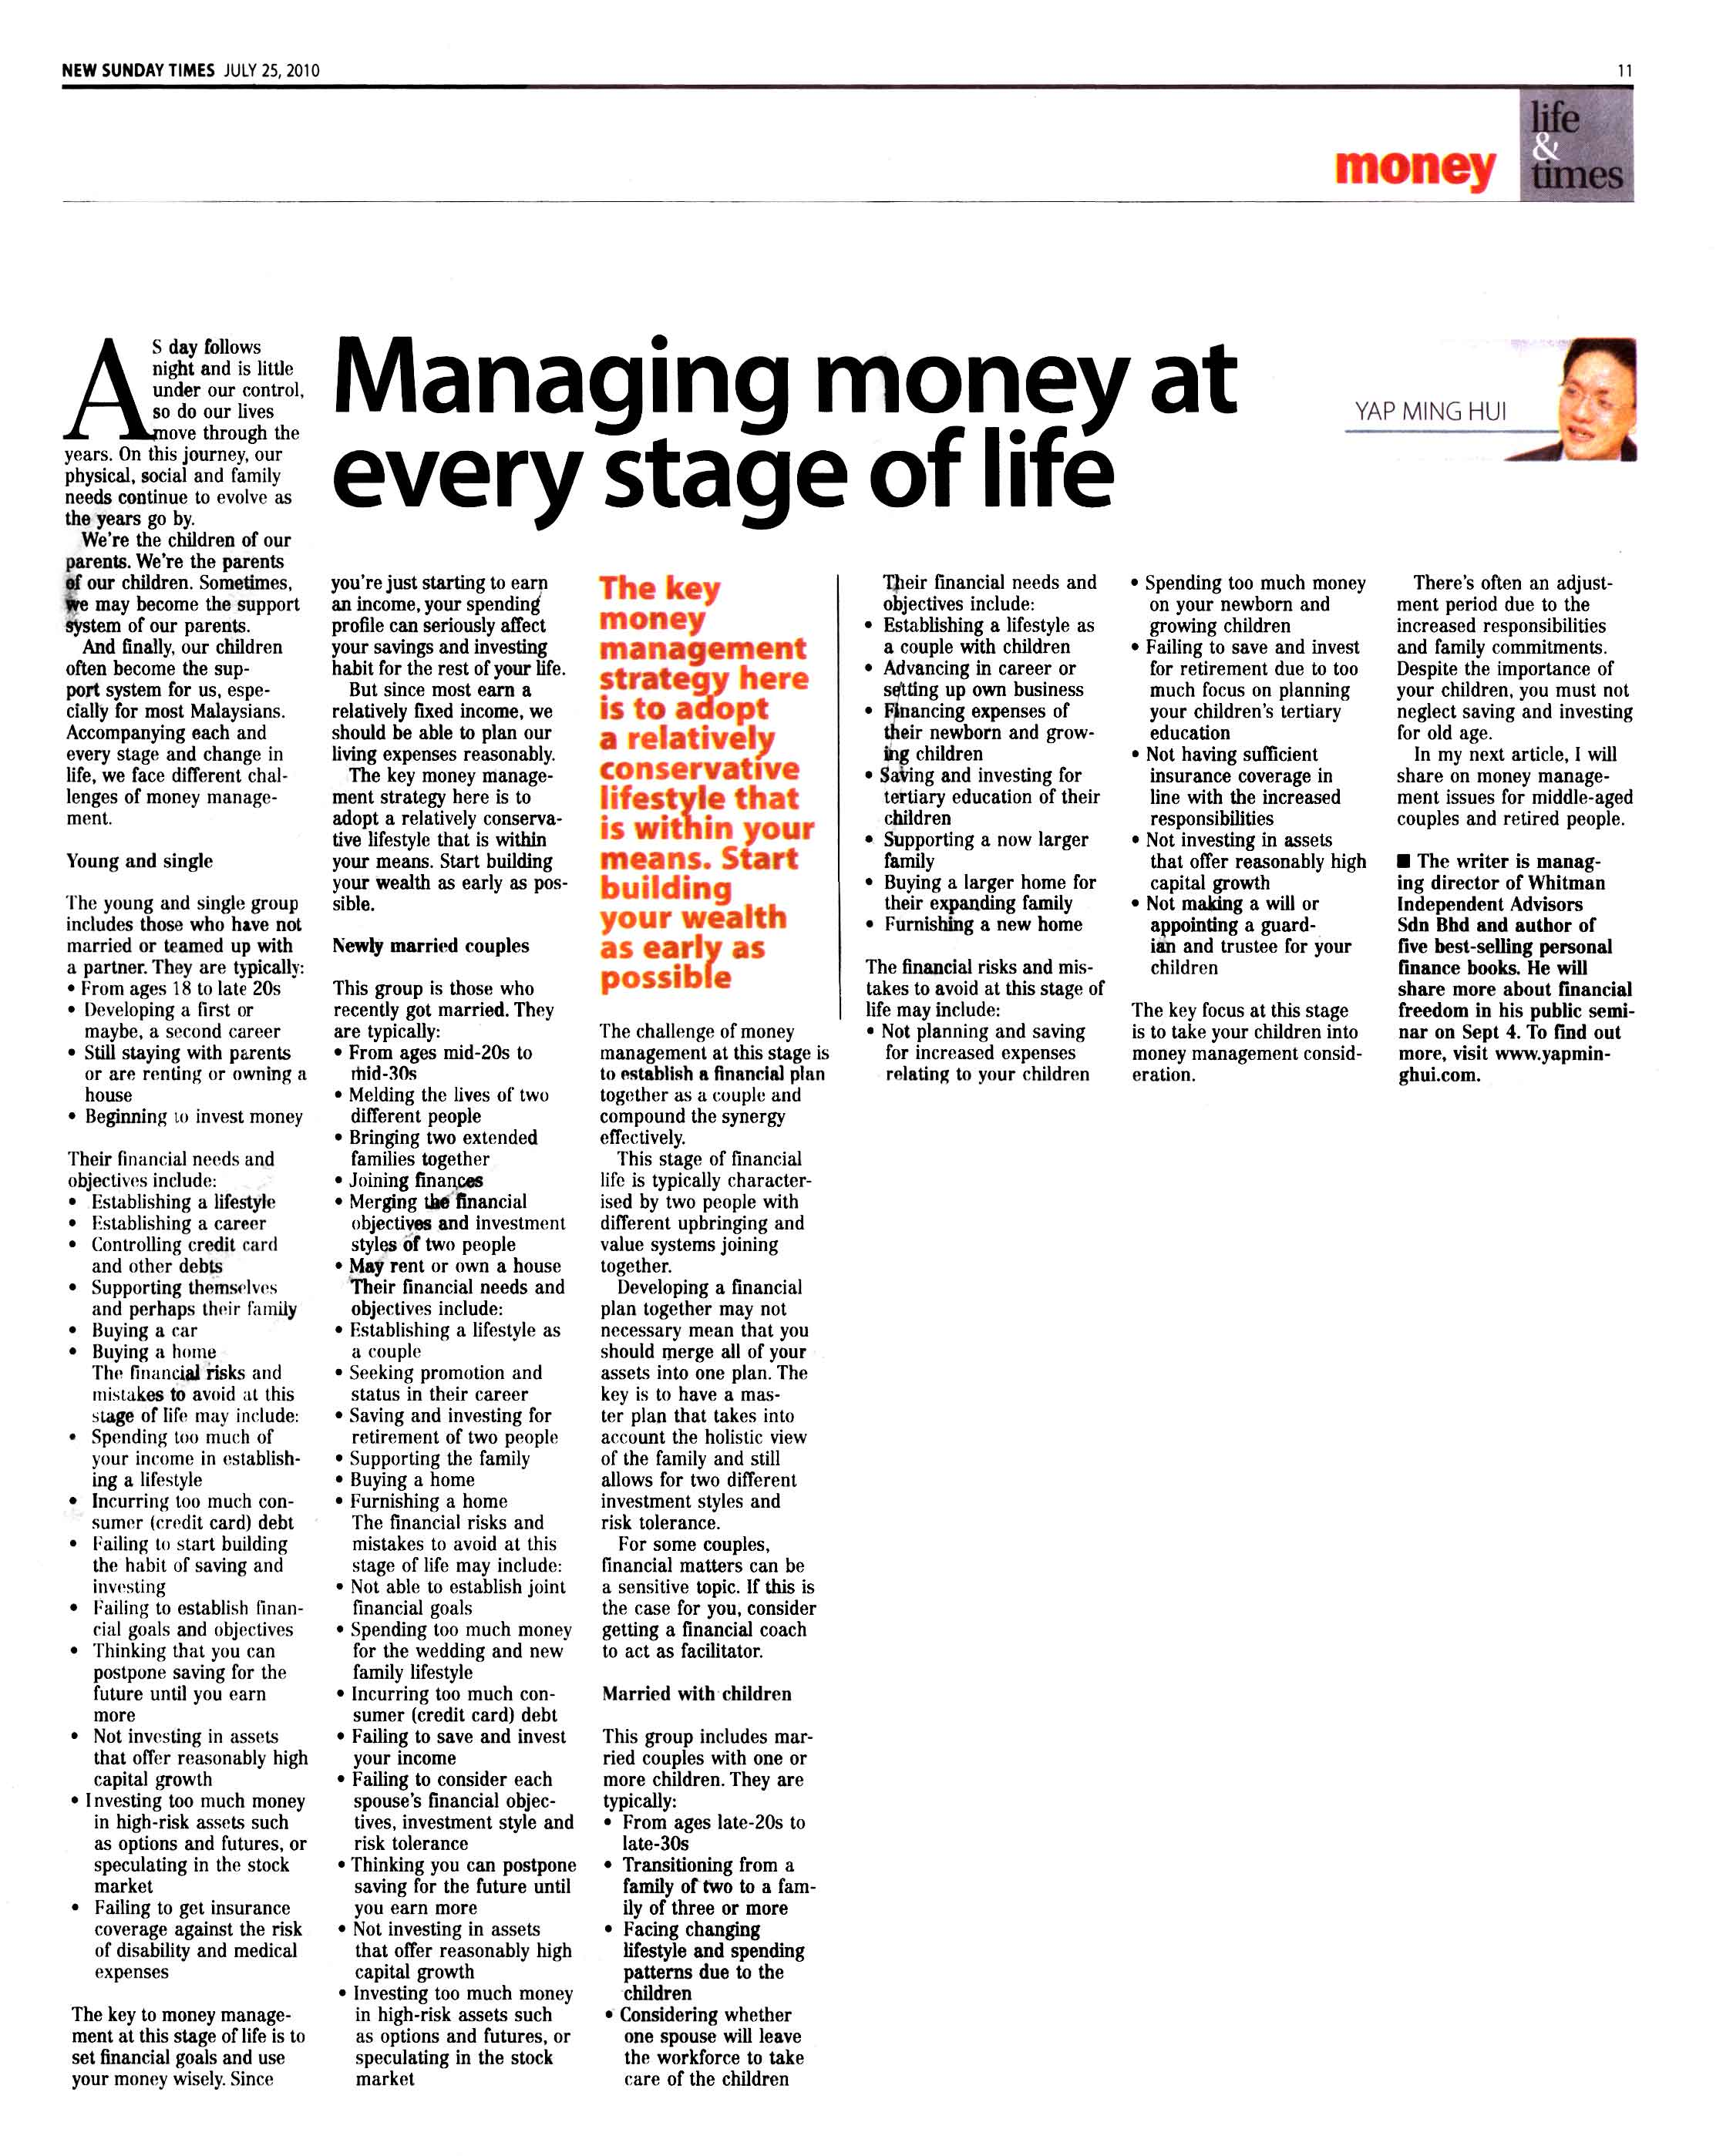 Managing money at every stage of life (New Sunday Times) - 25 Jul 2010